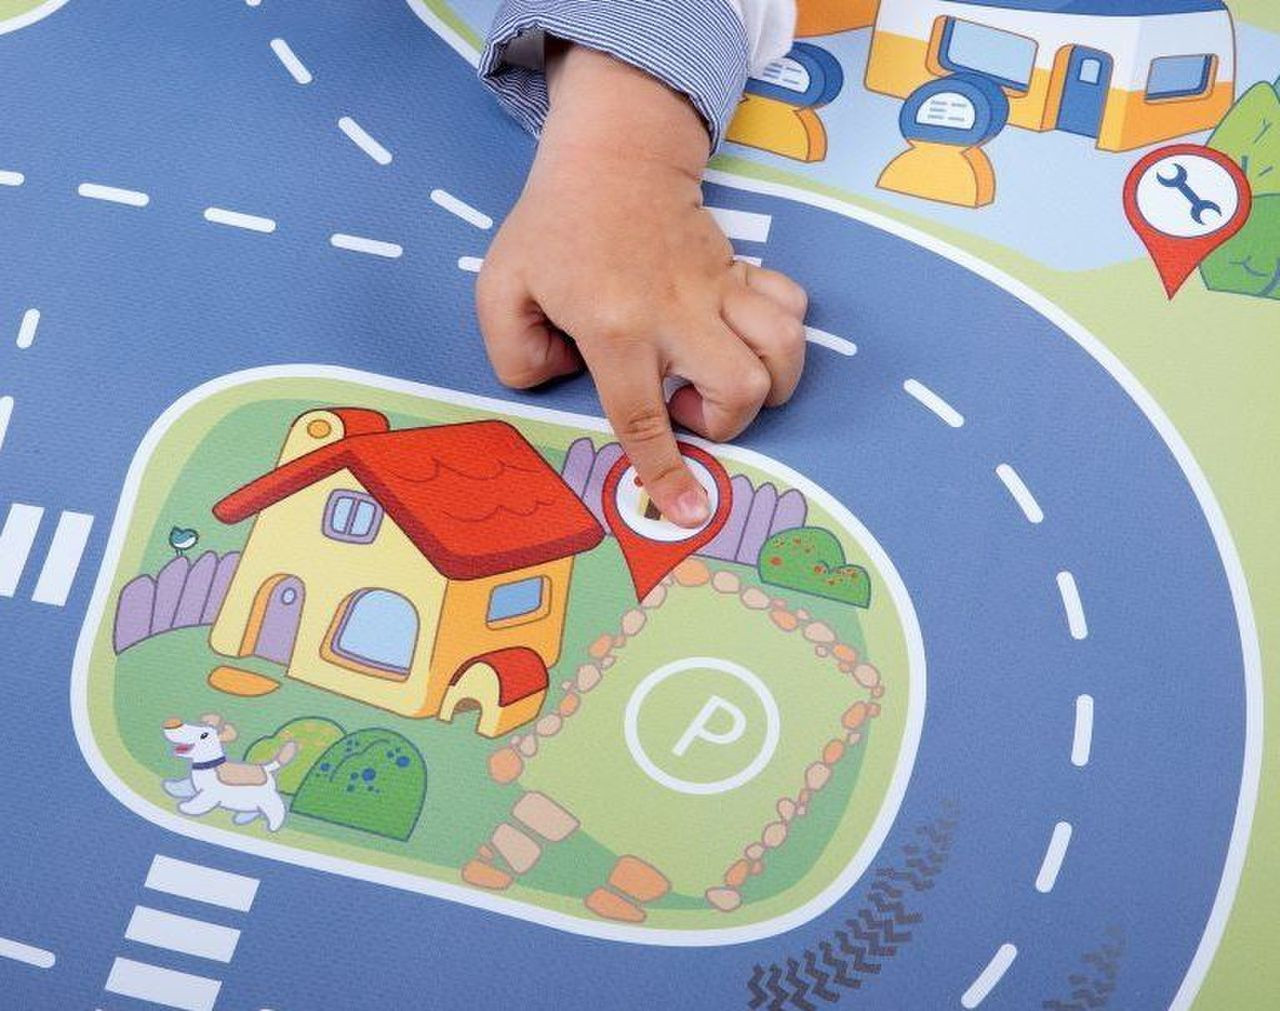 Chicco Electronic City Playmat 110 x 60 cm at Baby Barn Discounts